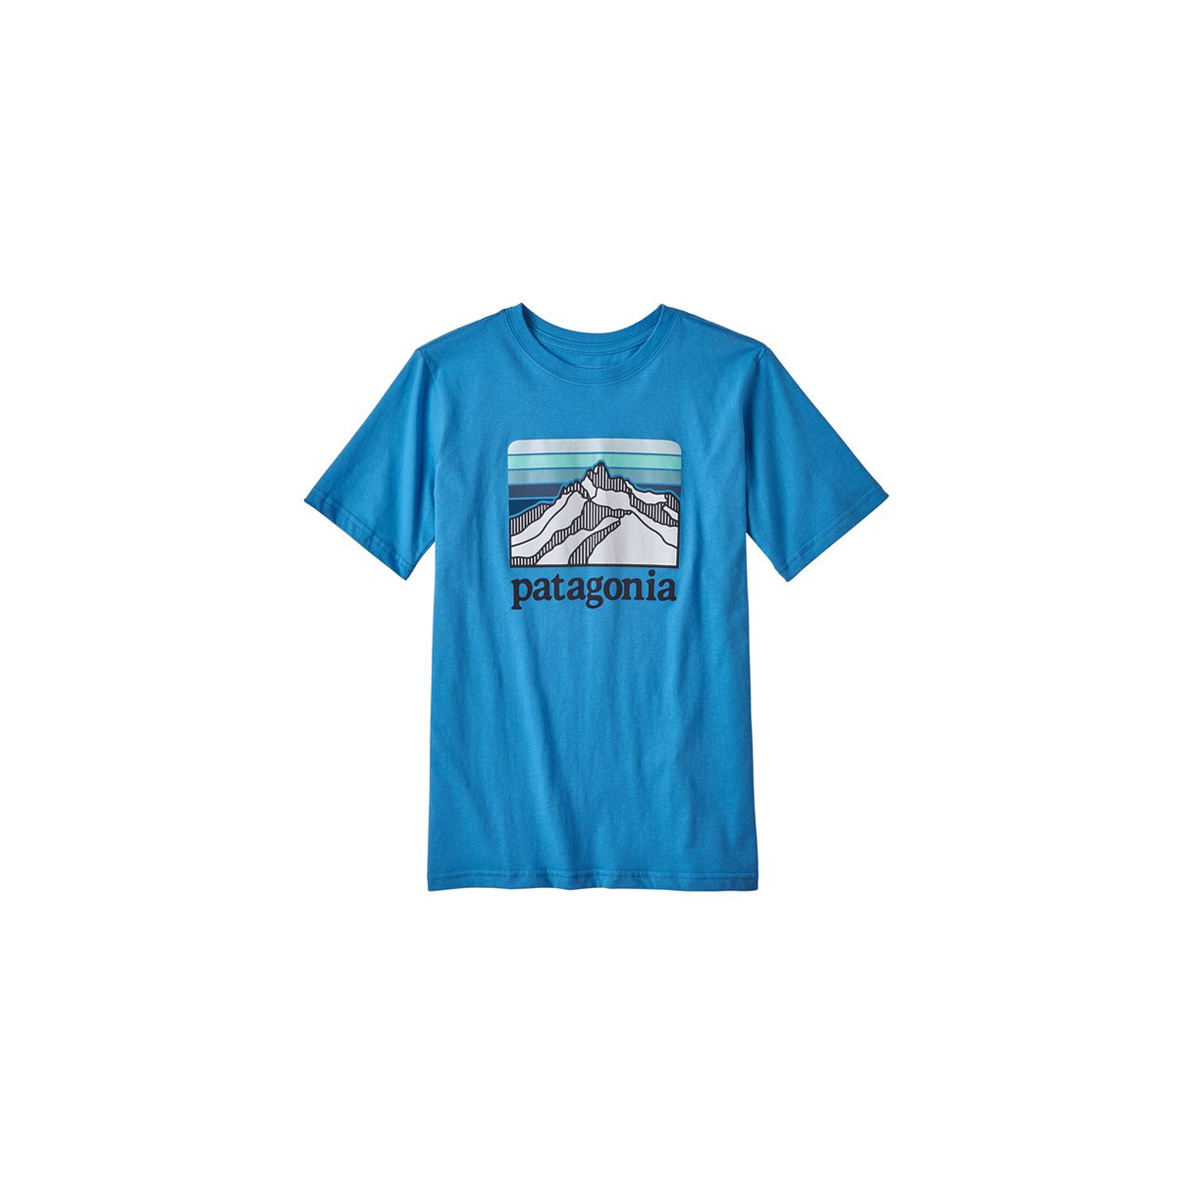 201782572 Patagonia B Graphic Organic T-Shirt - Gearhead Outfitters